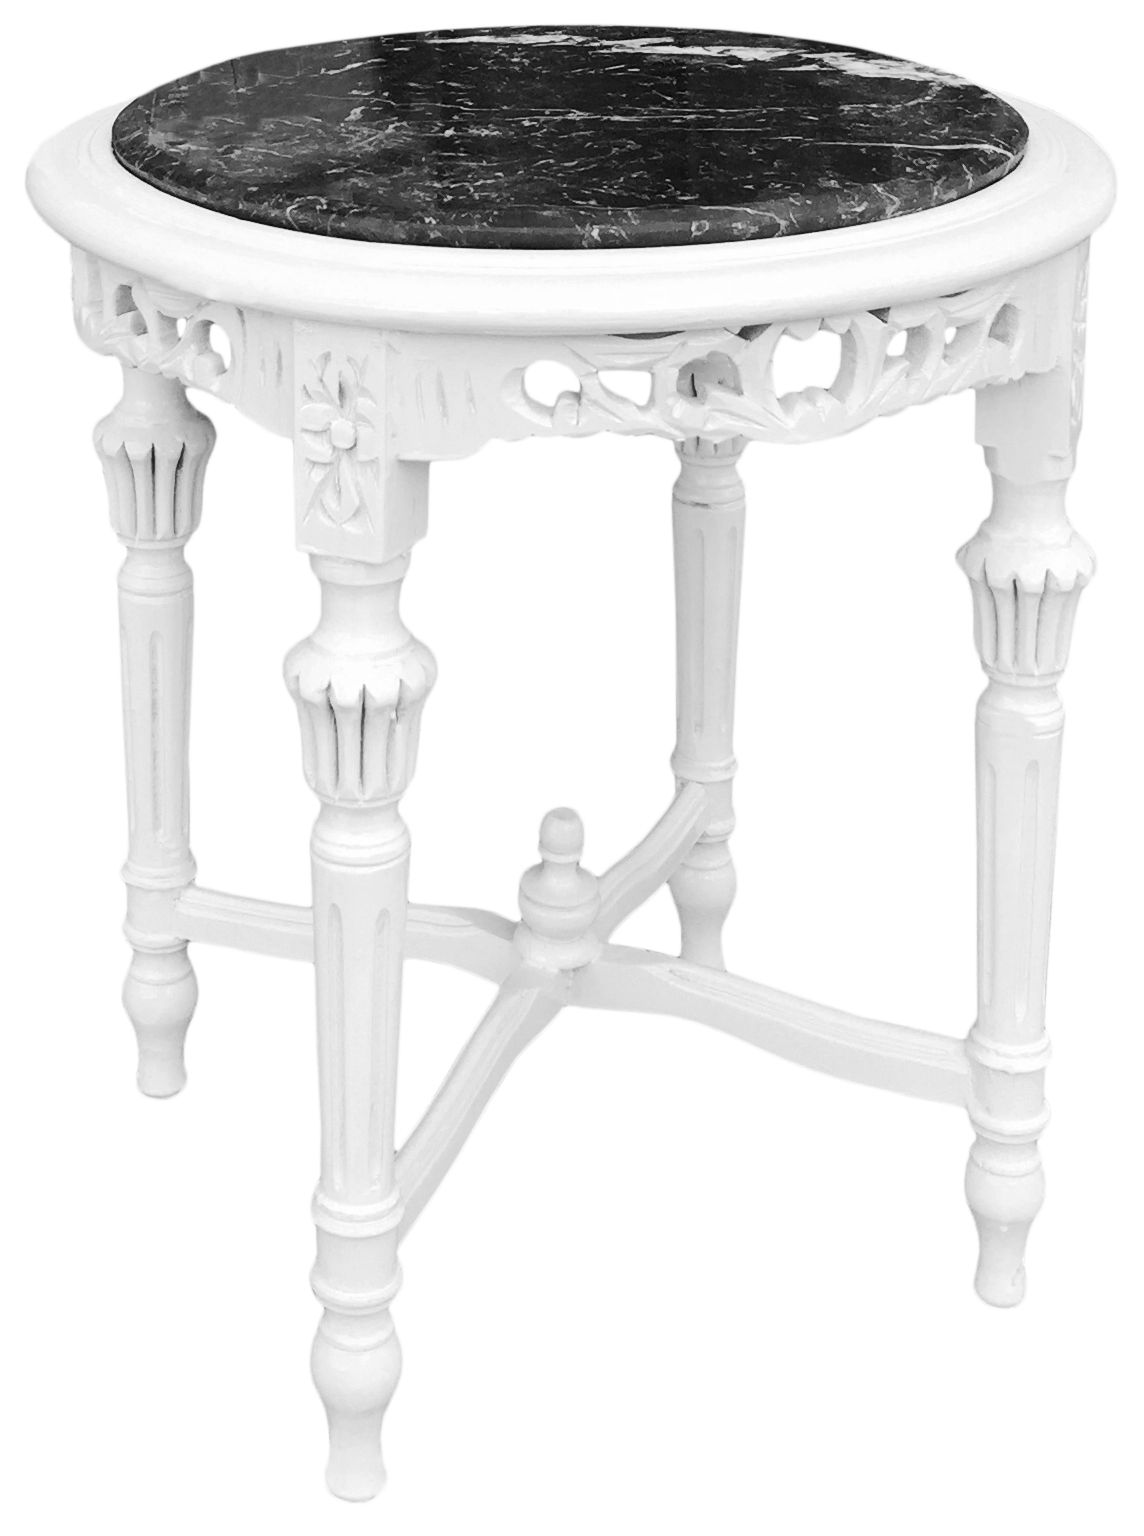 Round Louis Xvi Style Black Marble Side Table With Glossy White Wood